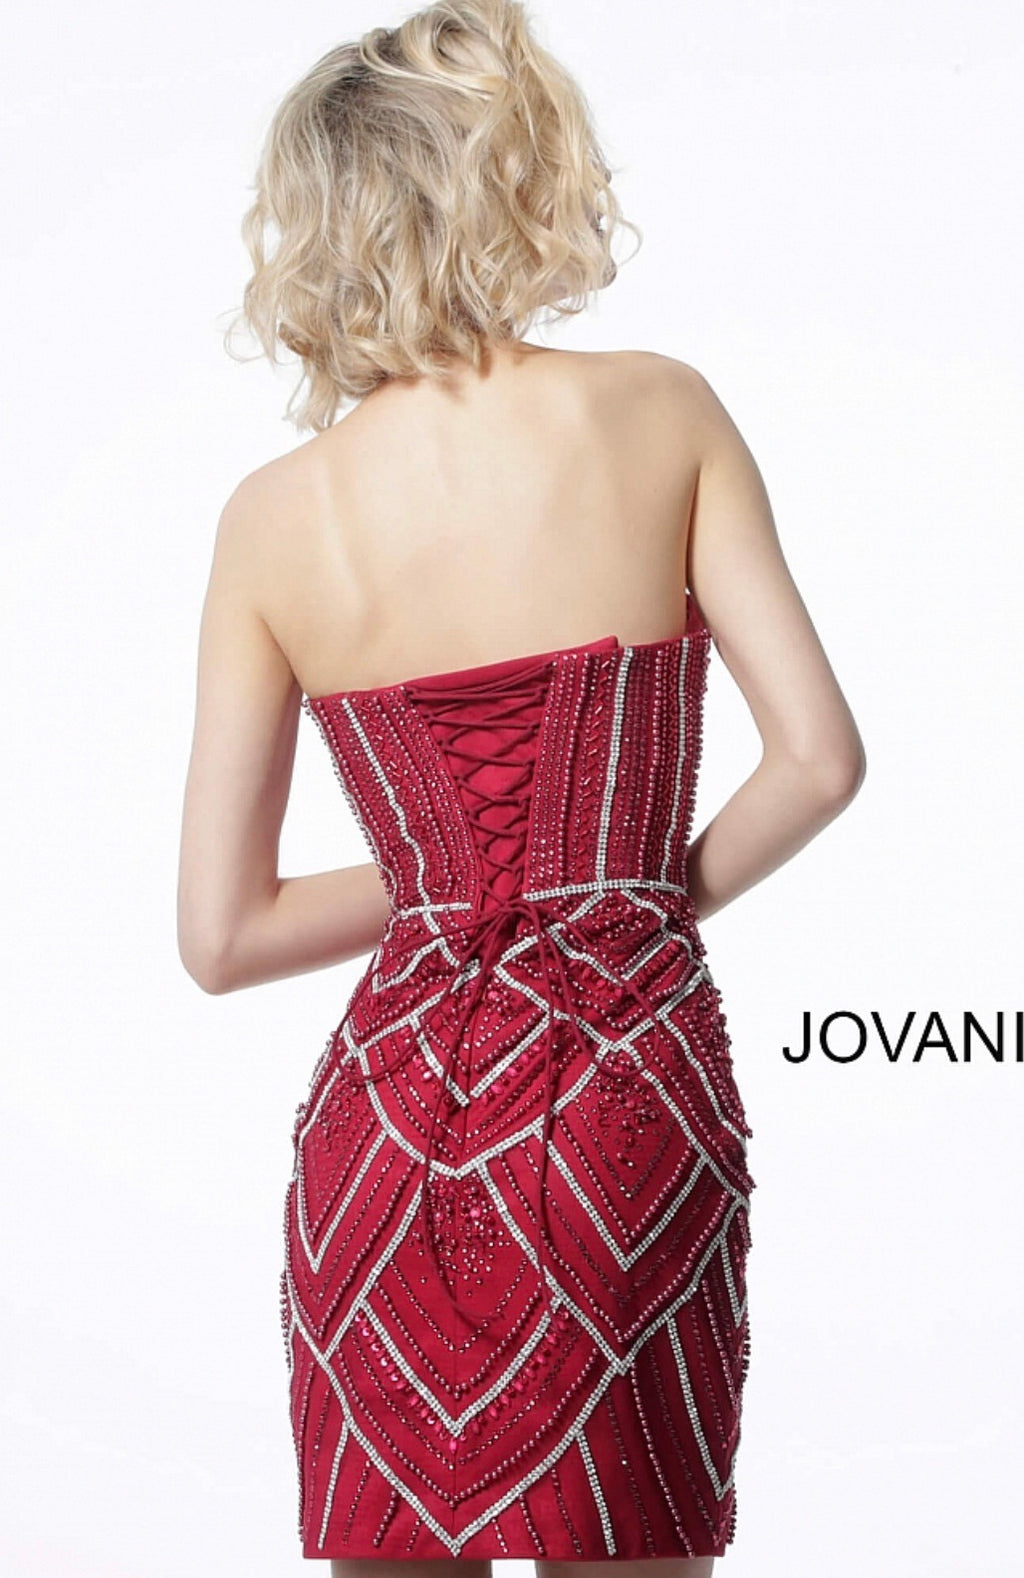 JOVANI 2394 Strapless Corset Dress - CYC Boutique